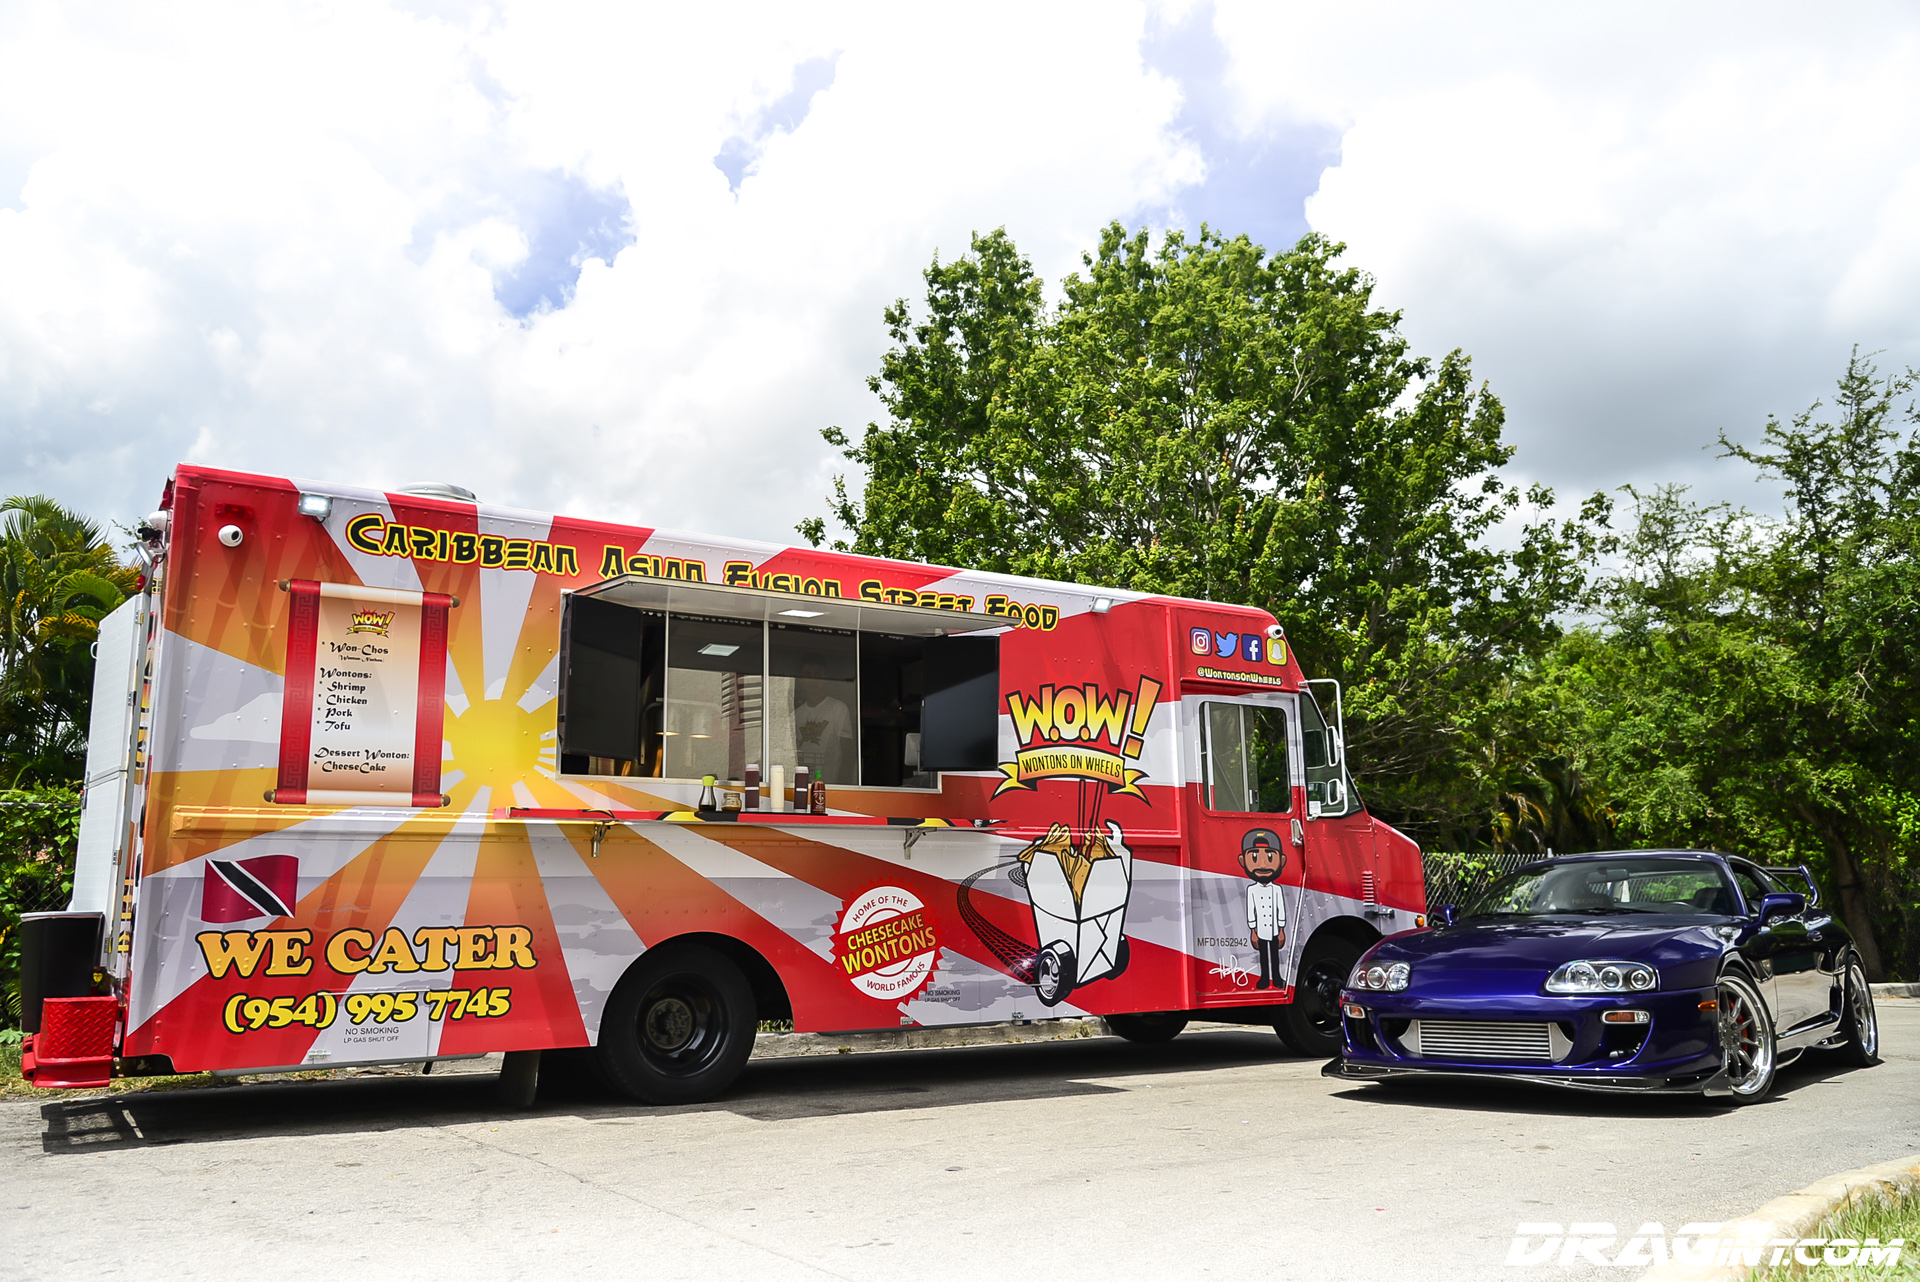 Happy Friday Feeding the Big Juice Supra with WOW Wontons on Wheels